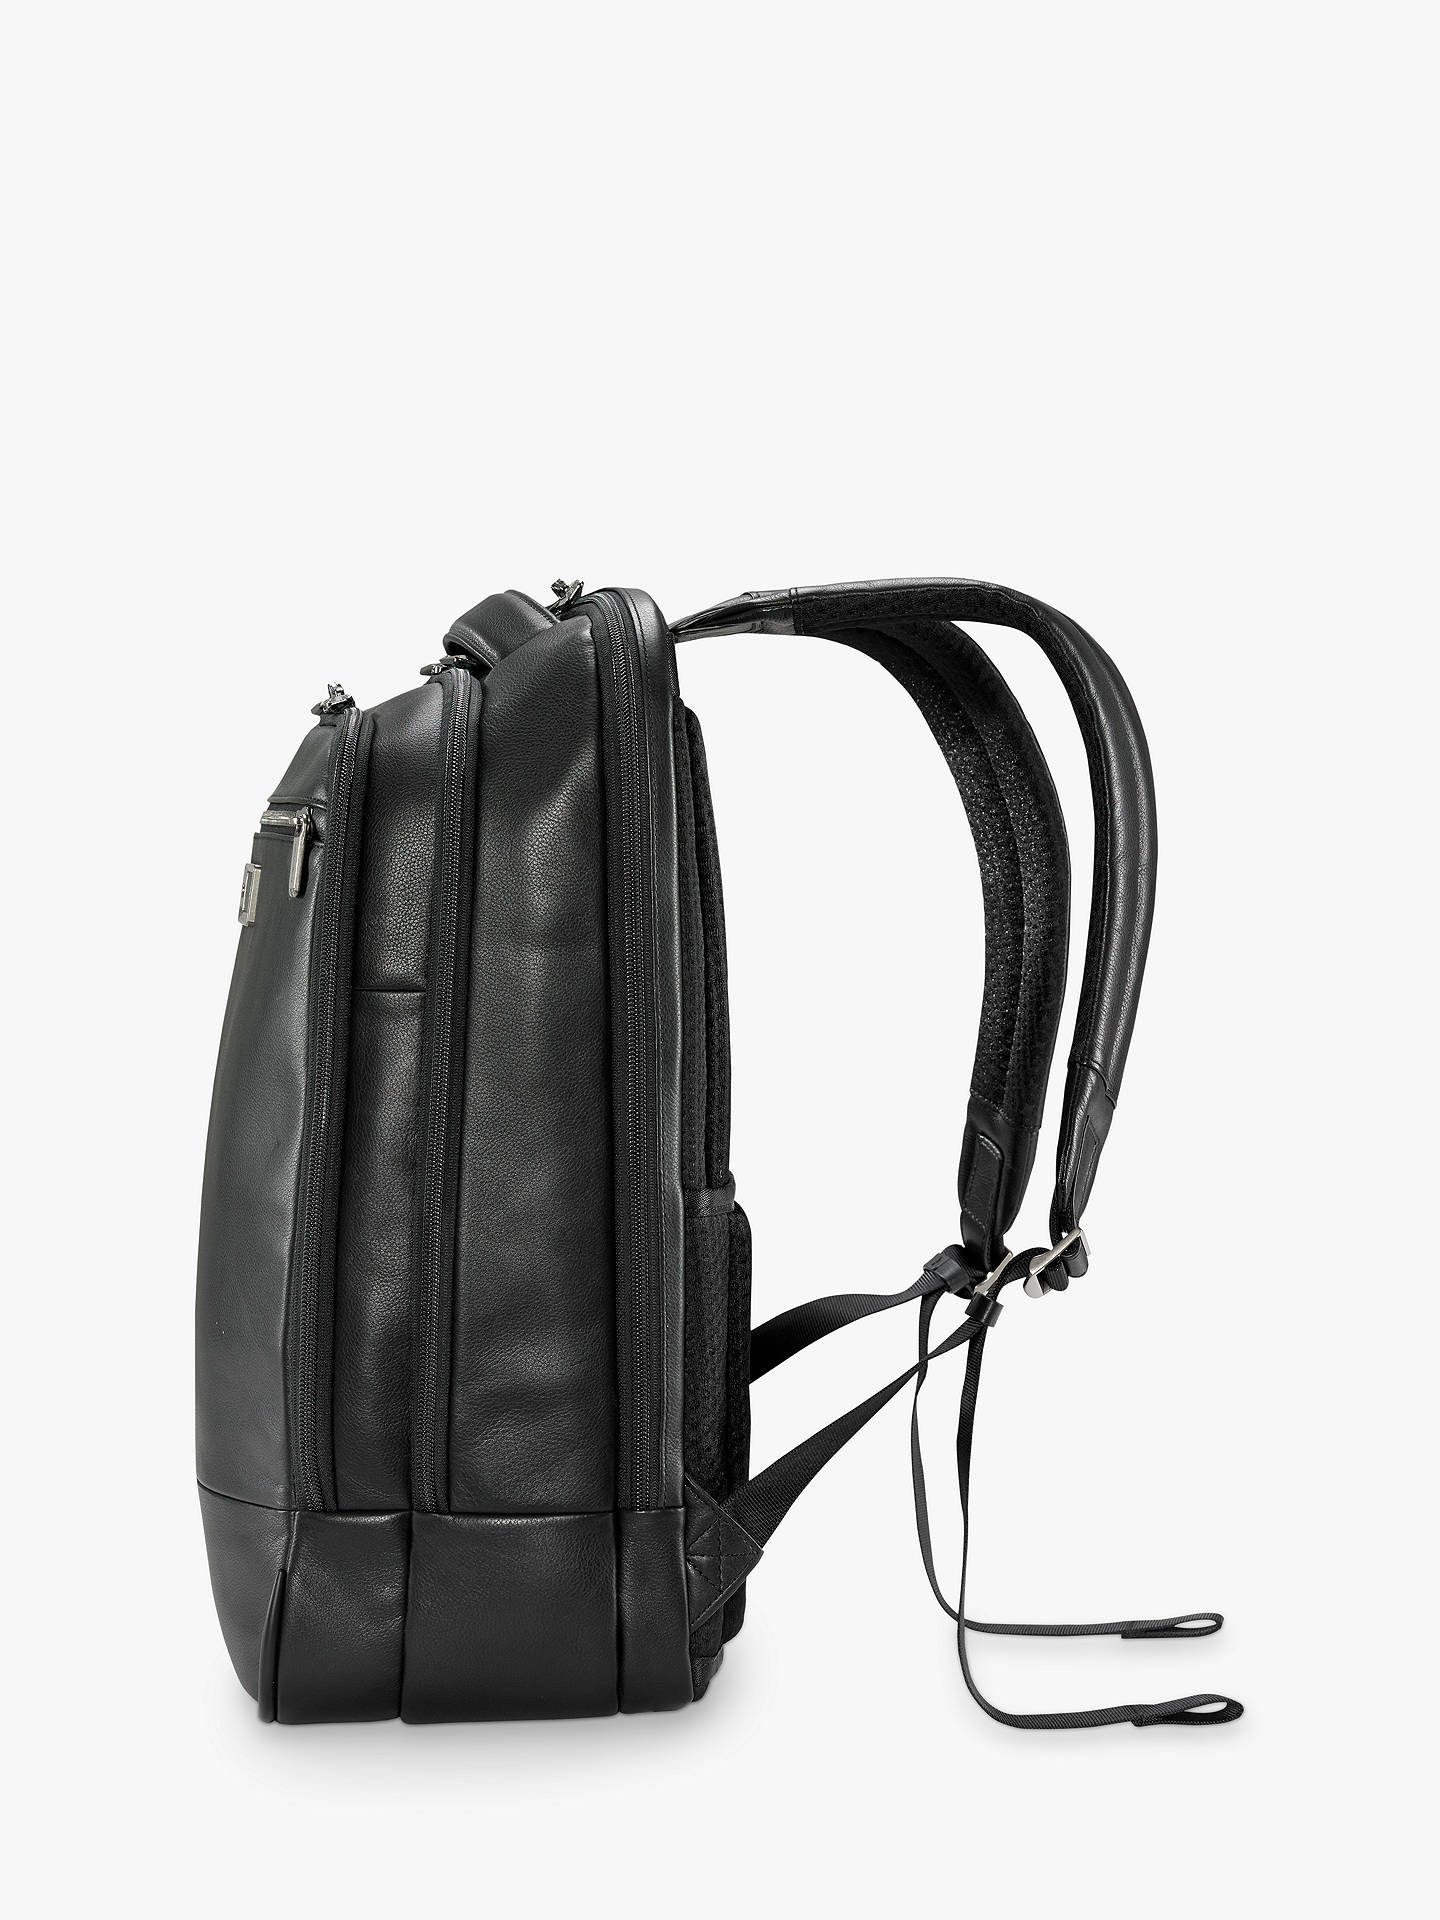 BuyBriggs & Riley AtWork Medium Leather Backpack, Black Online at johnlewis.com